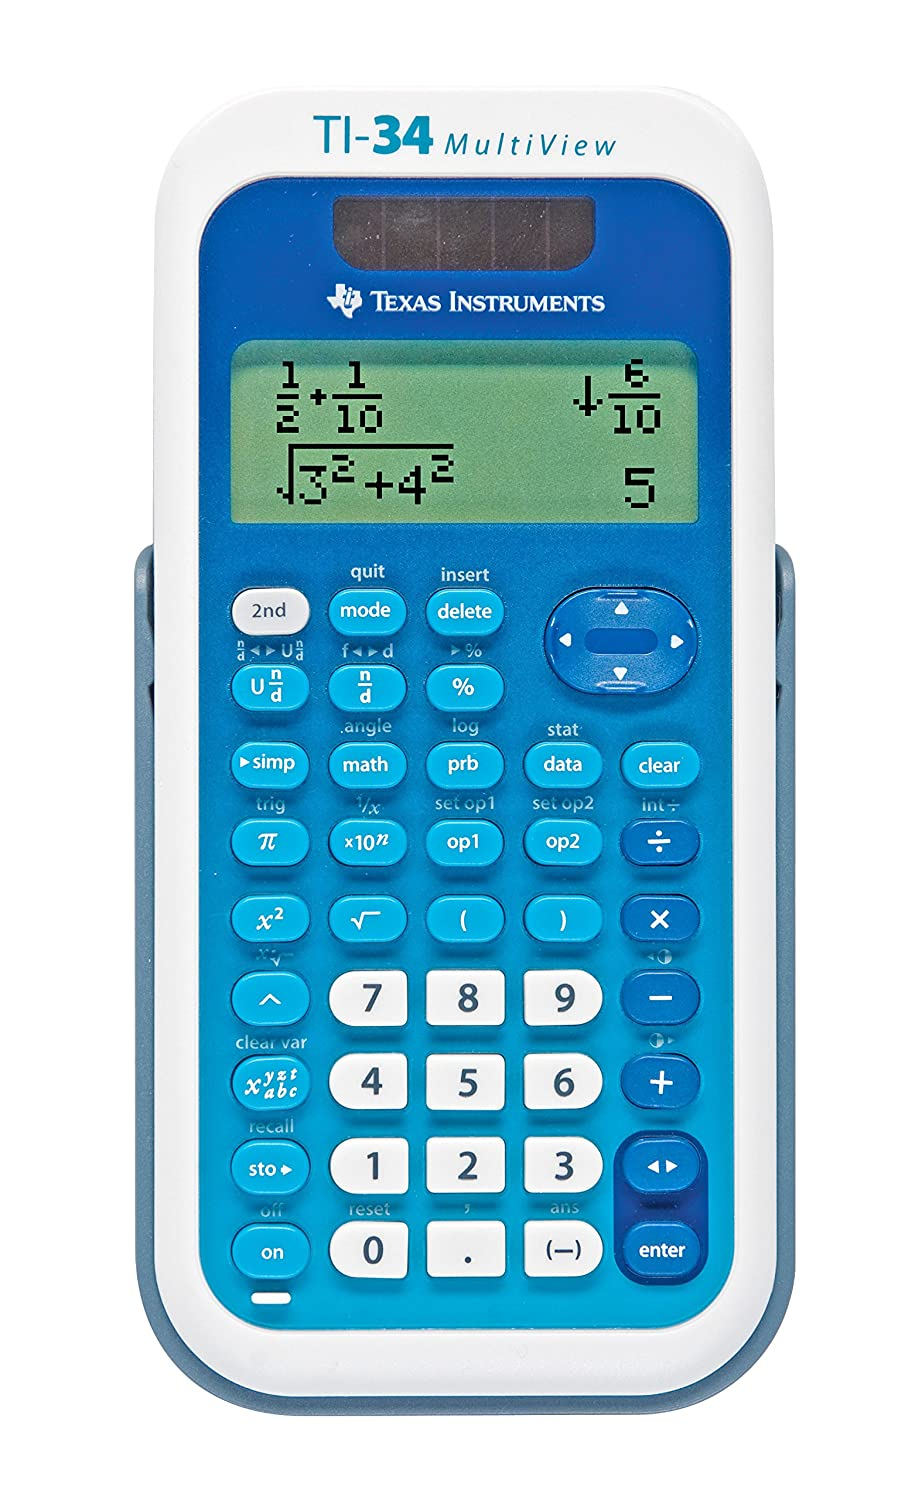 Amazon.com : Texas Instruments TI-34 MultiView Scientific Calculator ...